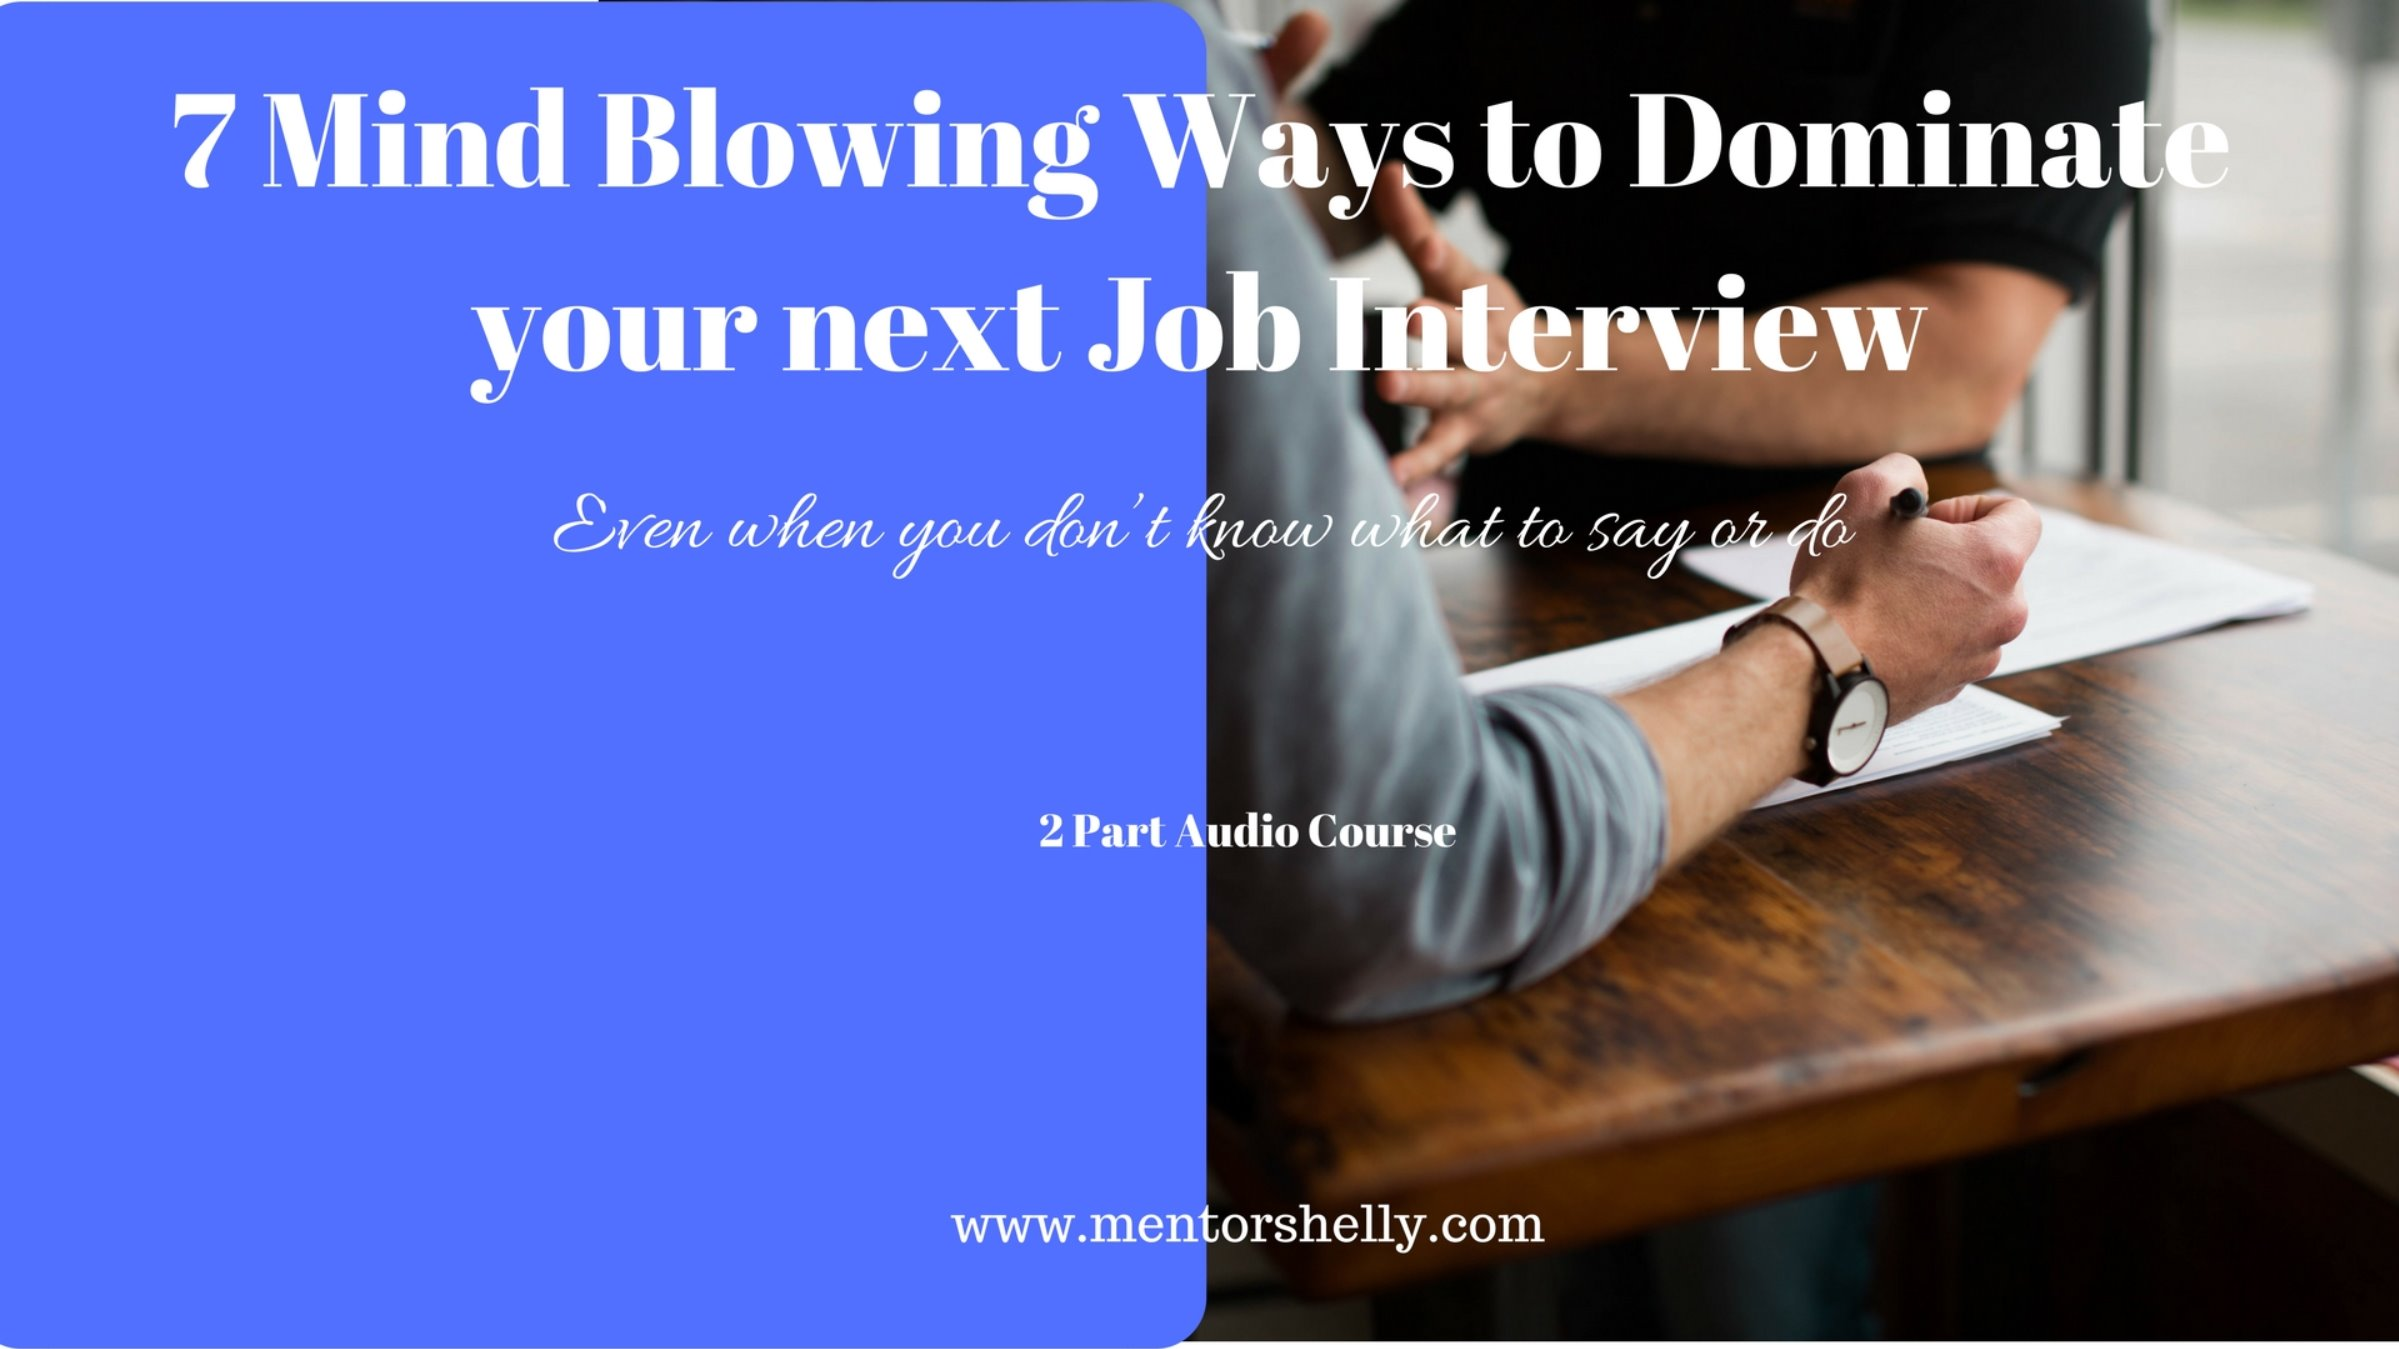 7 Mindblowing Ways to DOMINATE your Job Interview (Audio Course)